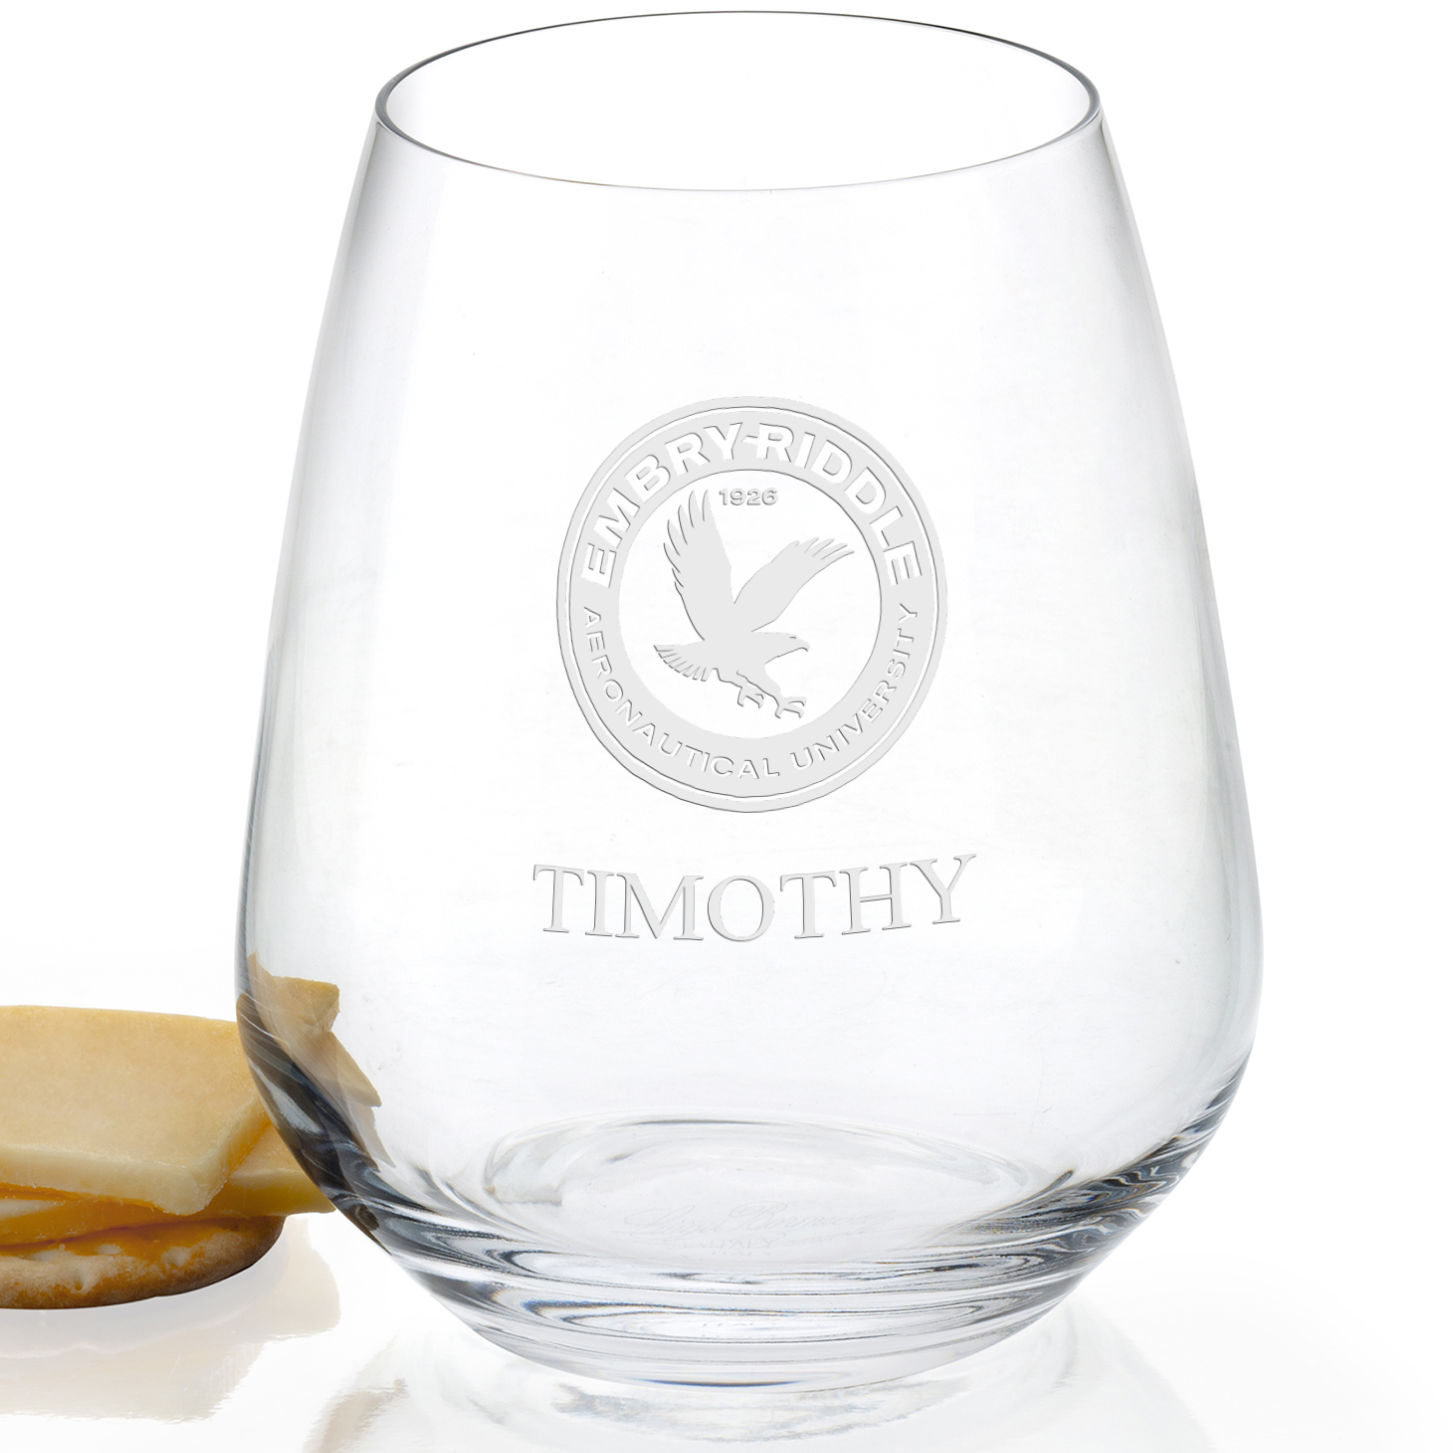 Embry-Riddle Stemless Wine Glasses - Set of 2 - Image 2